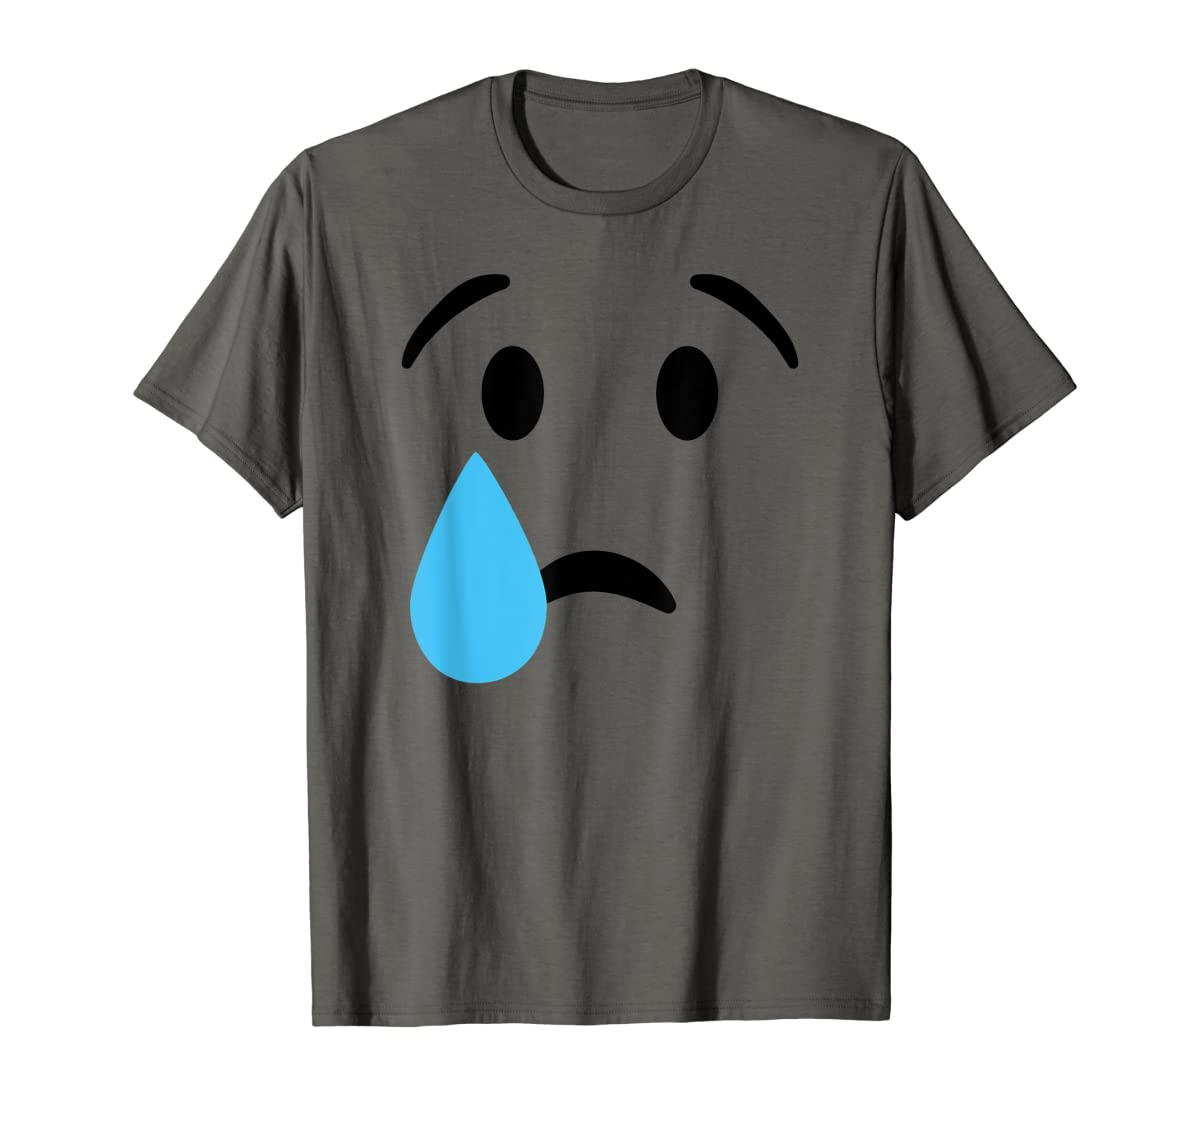 Sad Crying Tear Eyes Face Emojis Emoticon Halloween Costume T-Shirt-Men's T-Shirt-Dark Heather